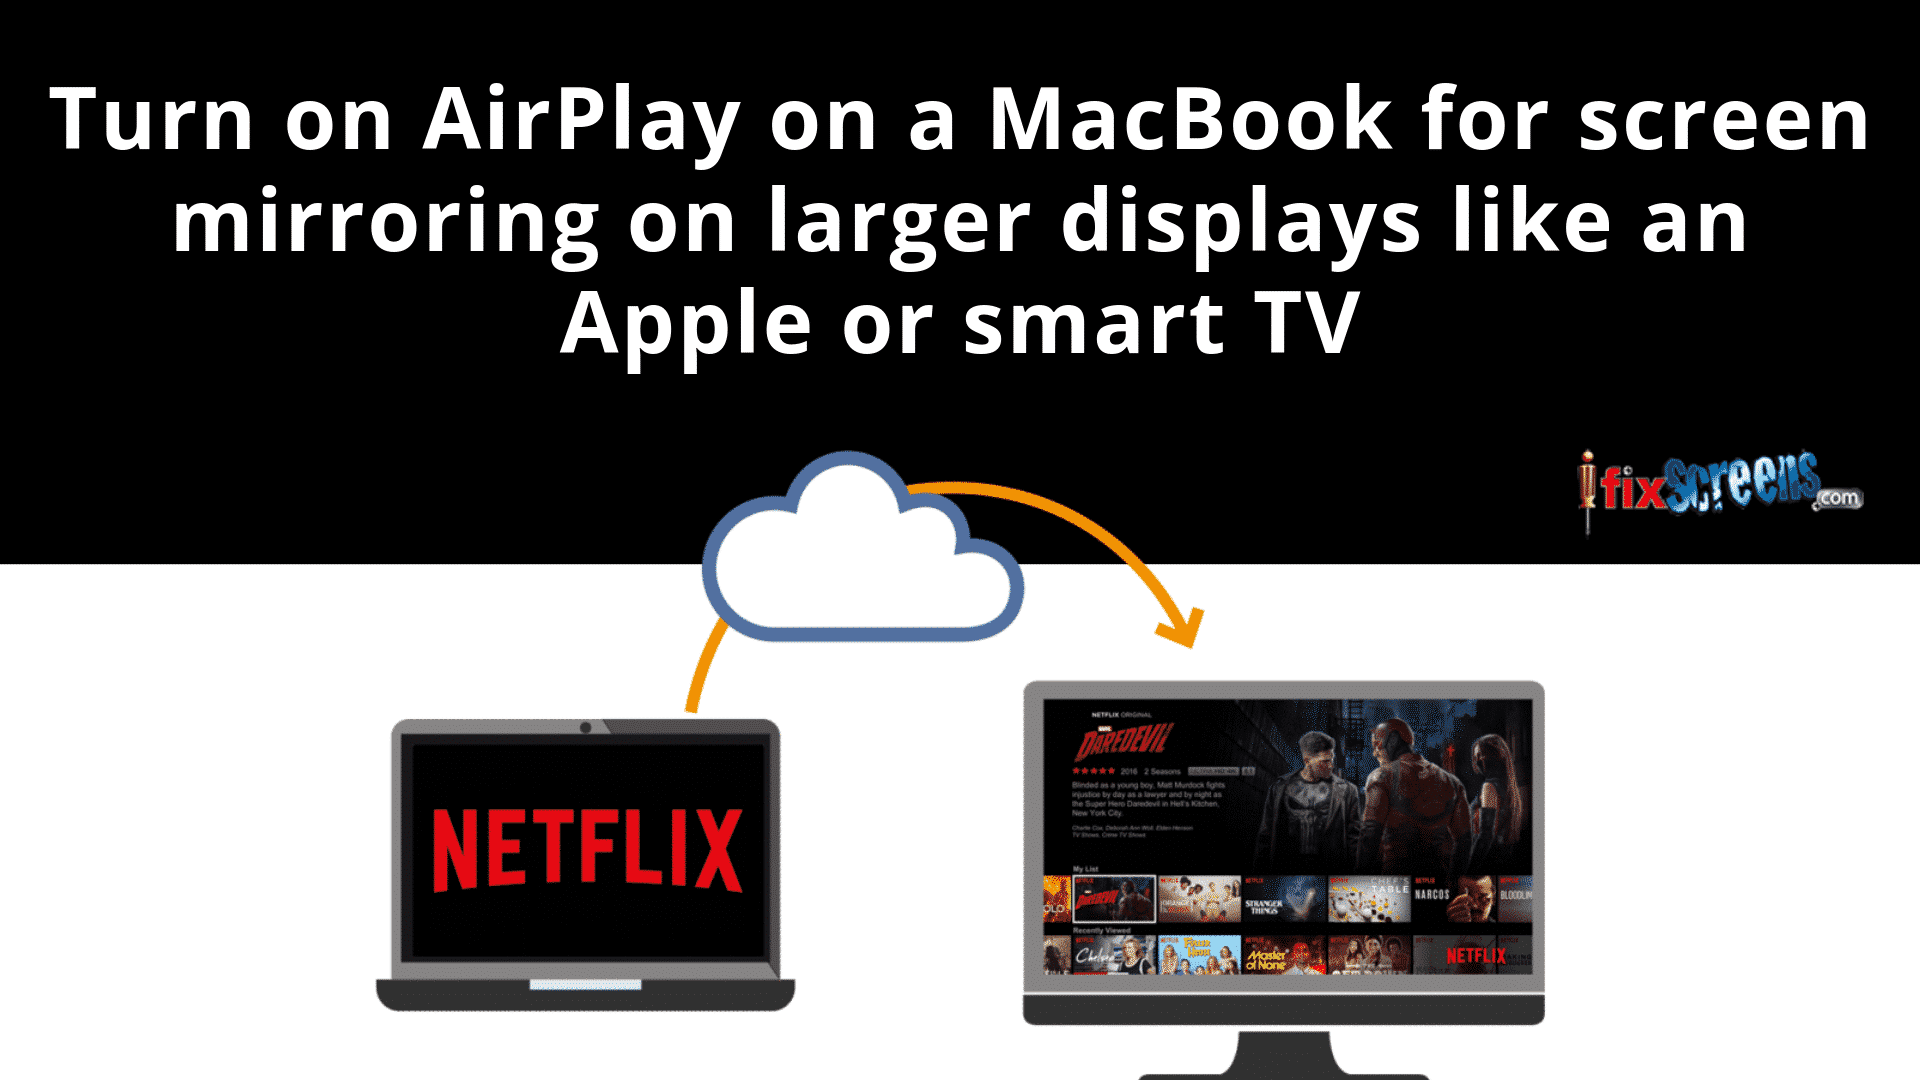 How Does Airplay Work On A MacBook?